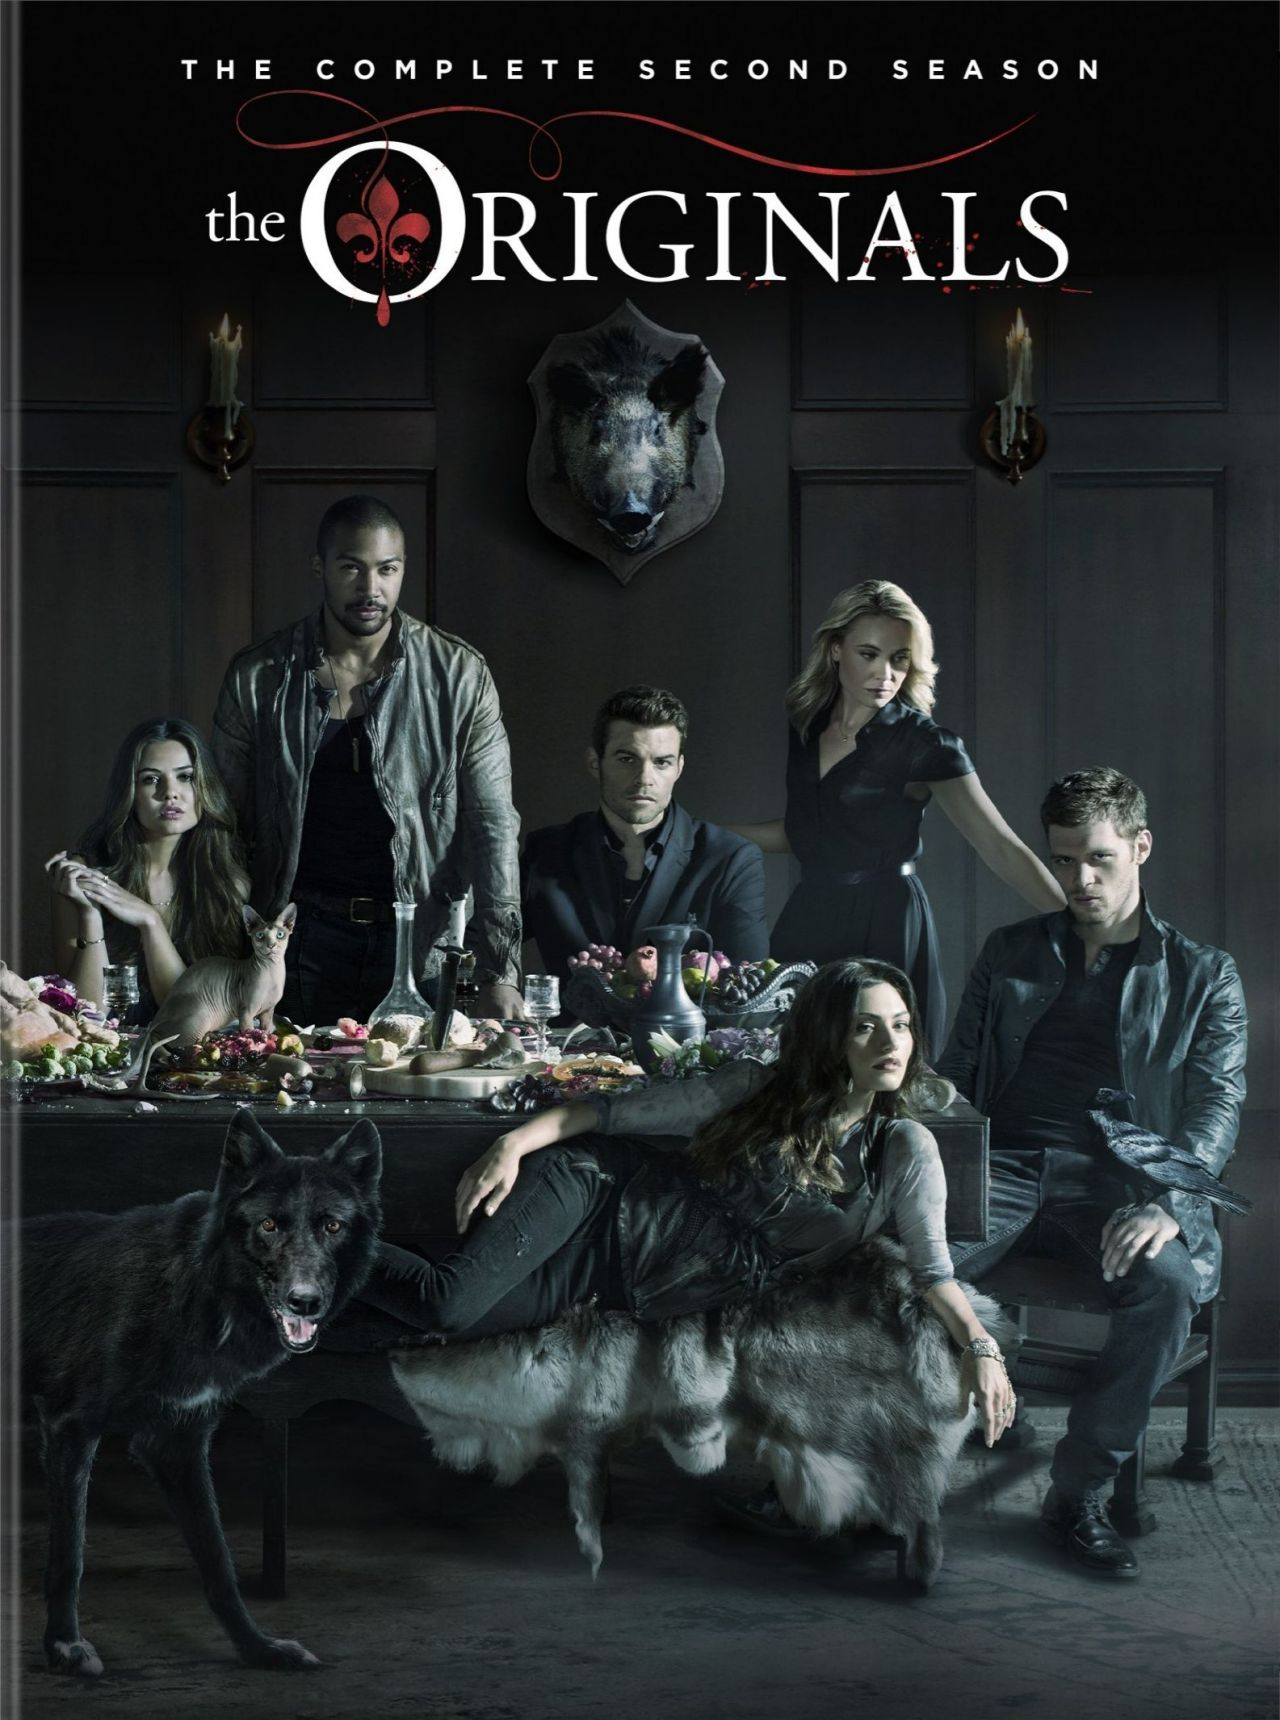 the originals season 2 poster